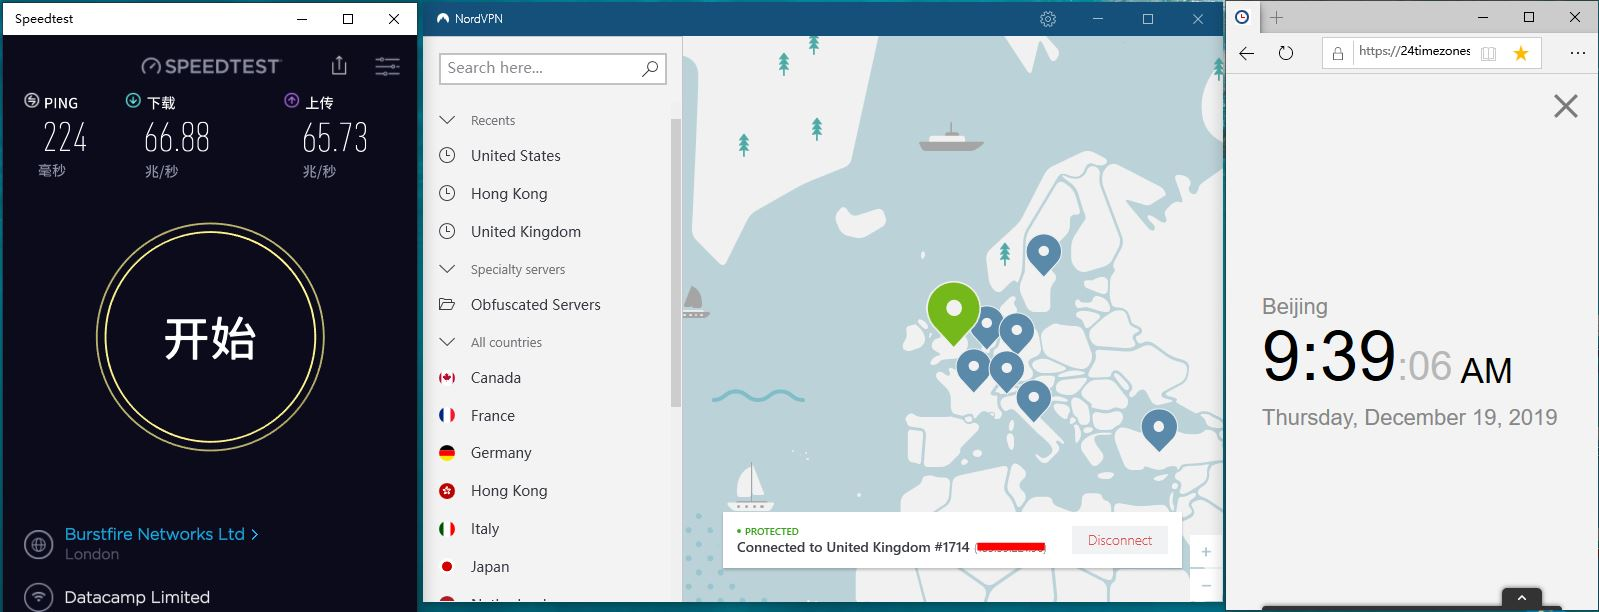 Win10 NordVPN TCP United Kingdom 中国VPN翻墙 科学上午 SpeedTest测试-20191219